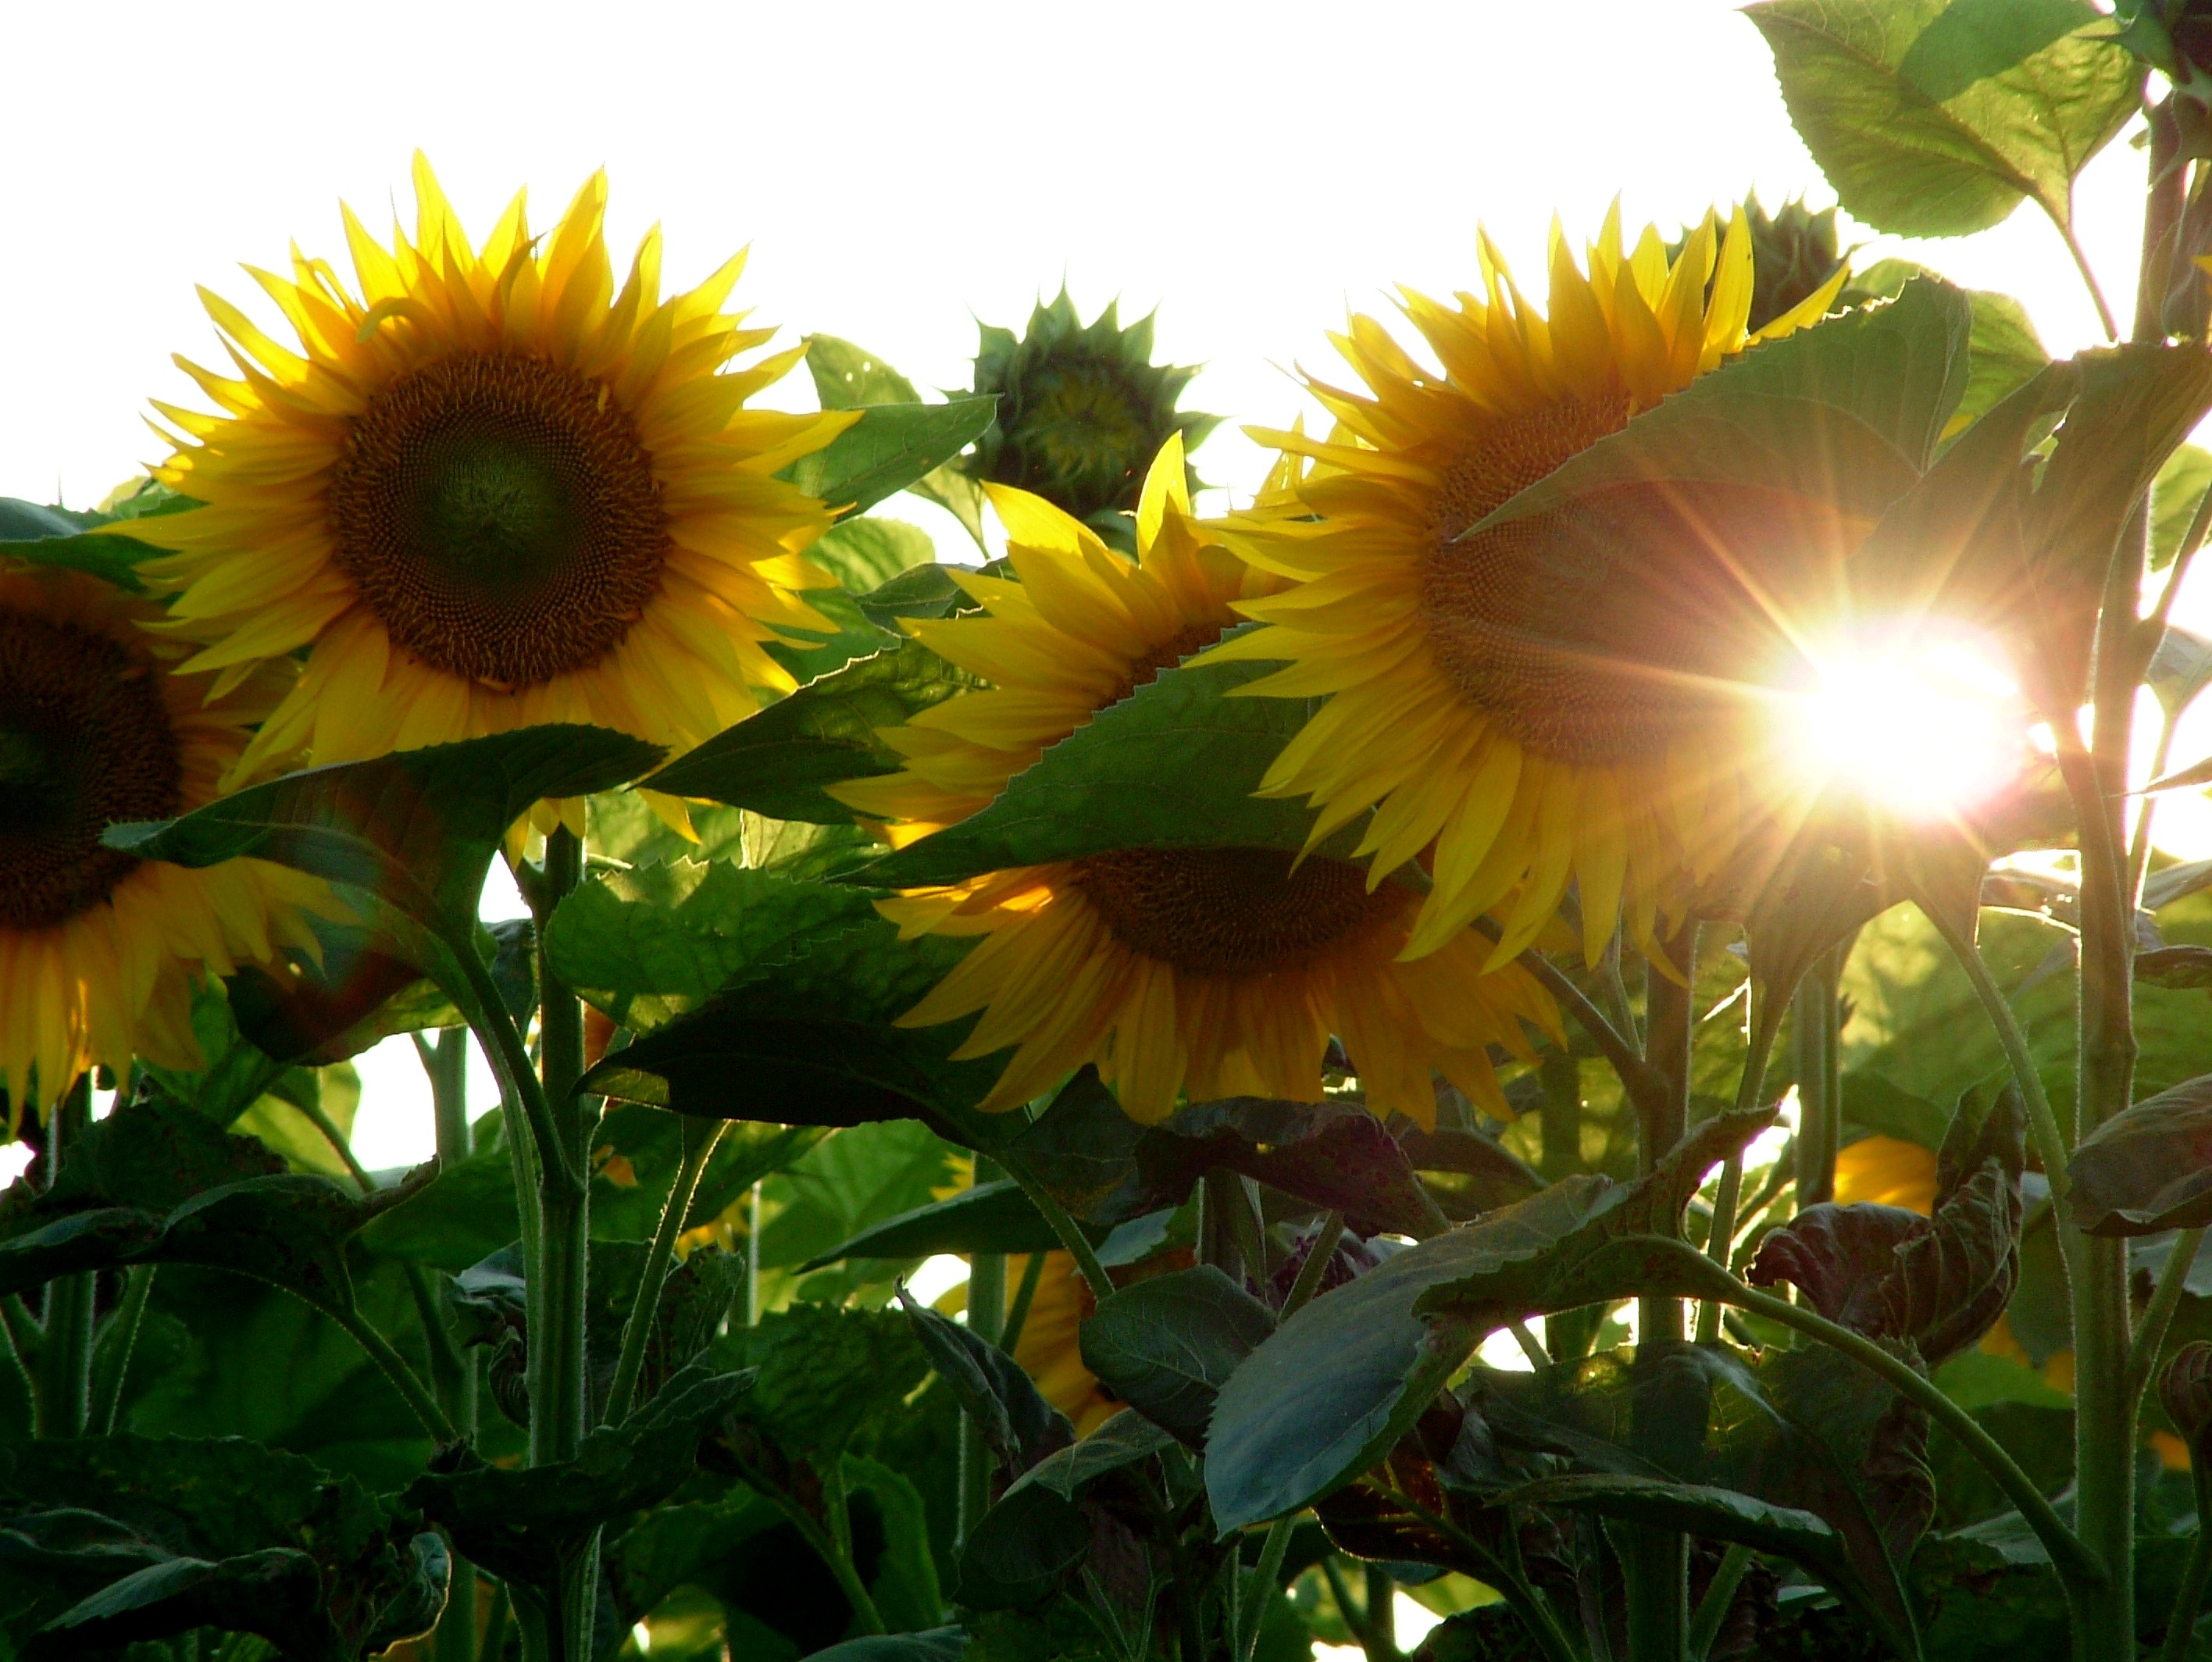 Sunflowers, for most people, are the perfect symbol of summer!